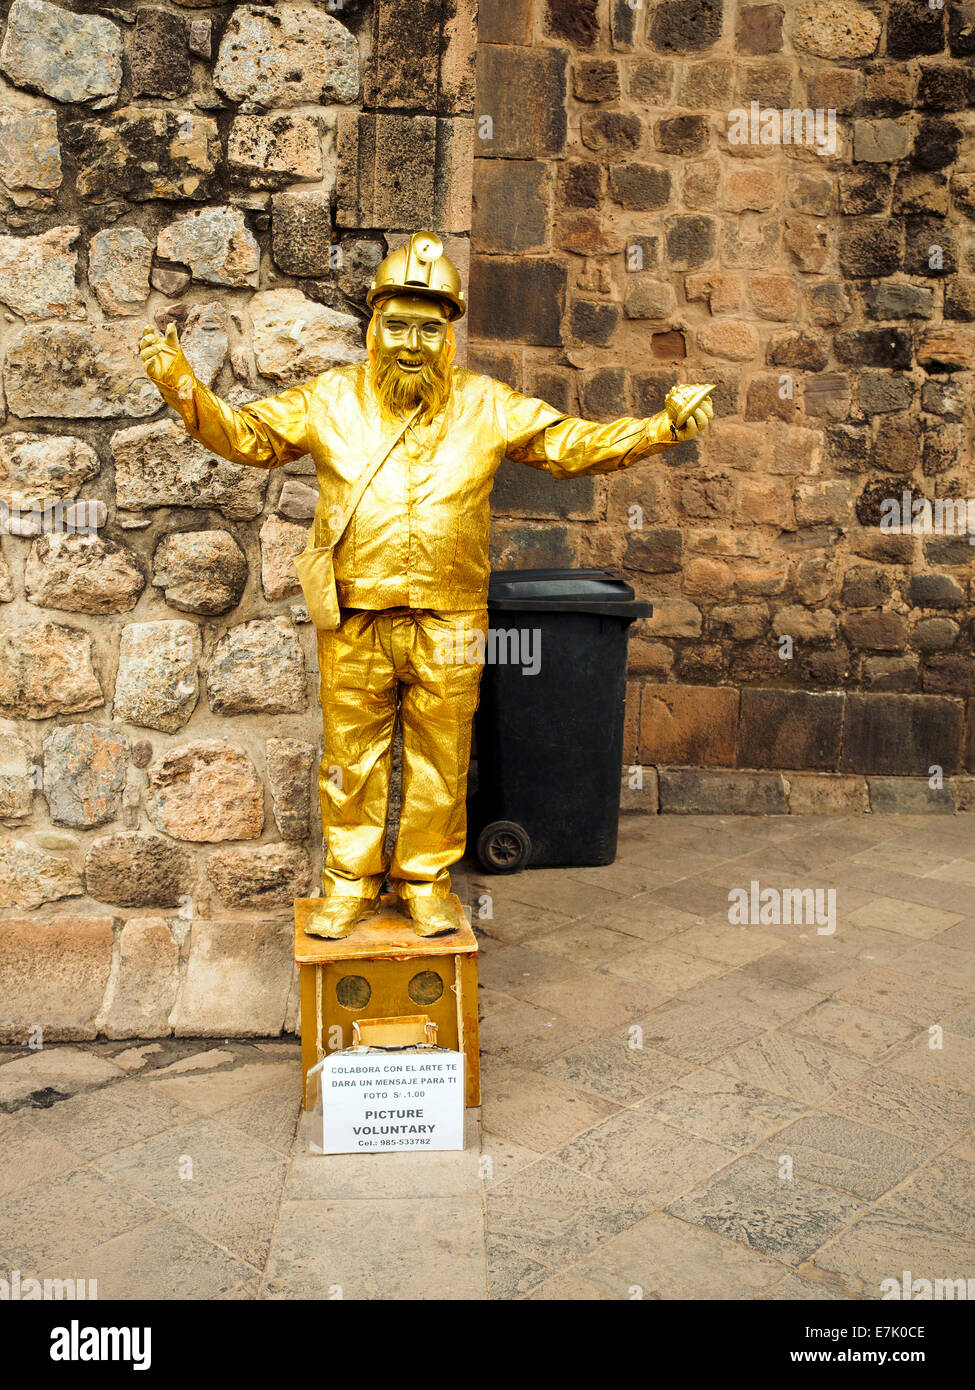 Human statue street performer in golden clothes - Cusco, Peru - Stock Image